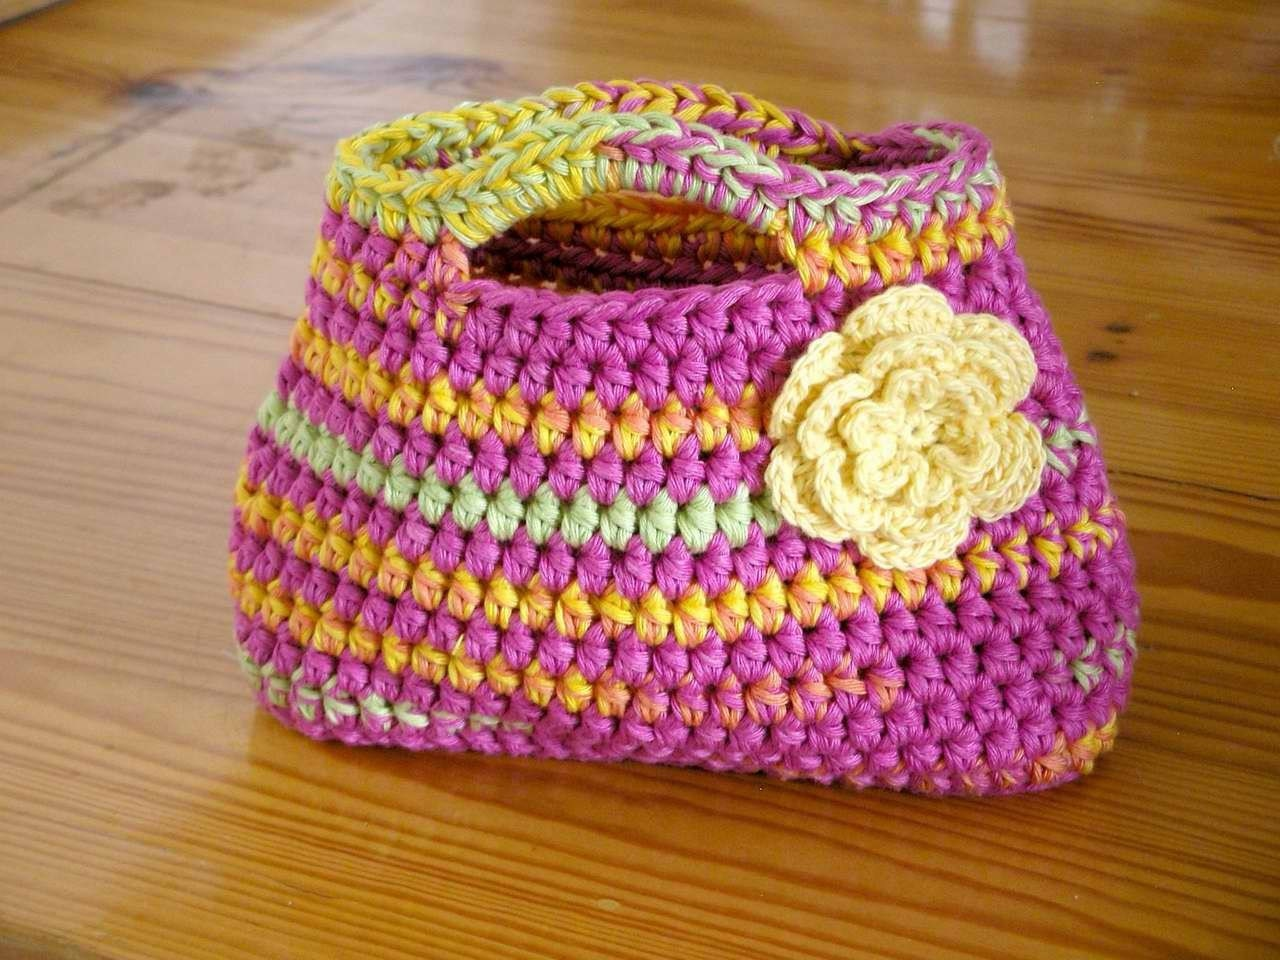 Crochet Bag Pattern Easy : Easy Peasy Little Kidz Bag Crochet PATTERN by bubnutPatterns